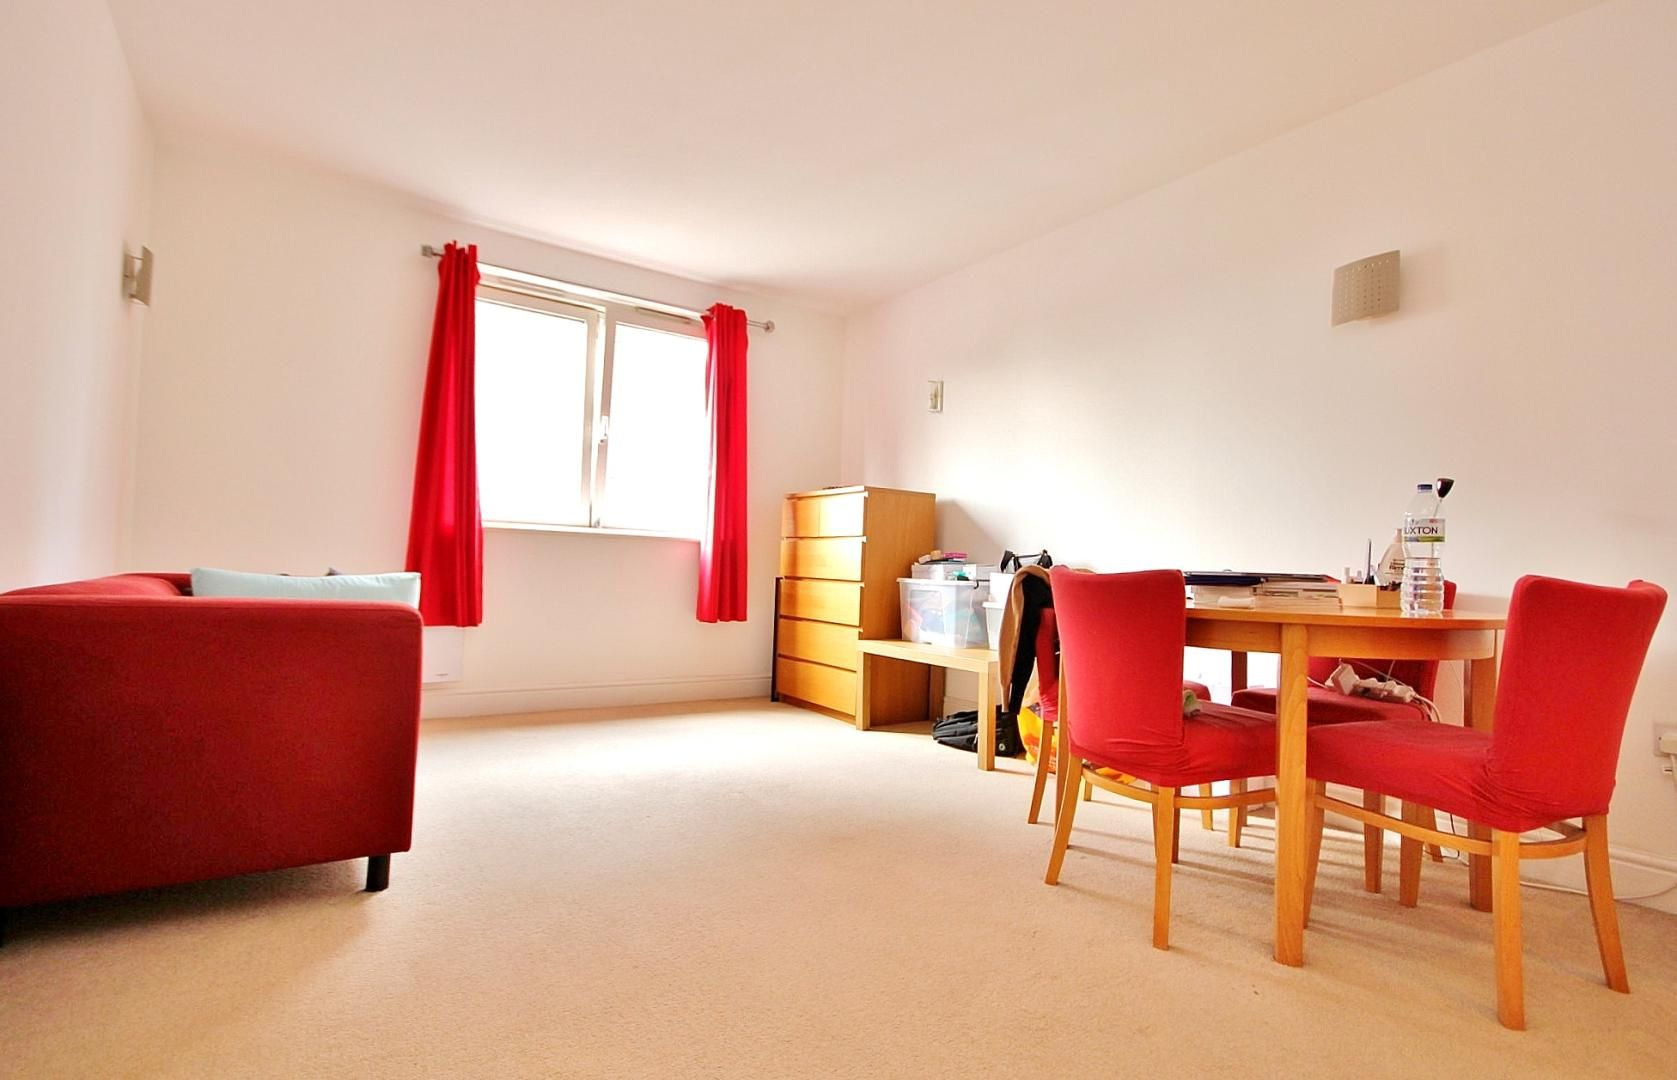 1 bed flat to rent in Colefax Building, E1